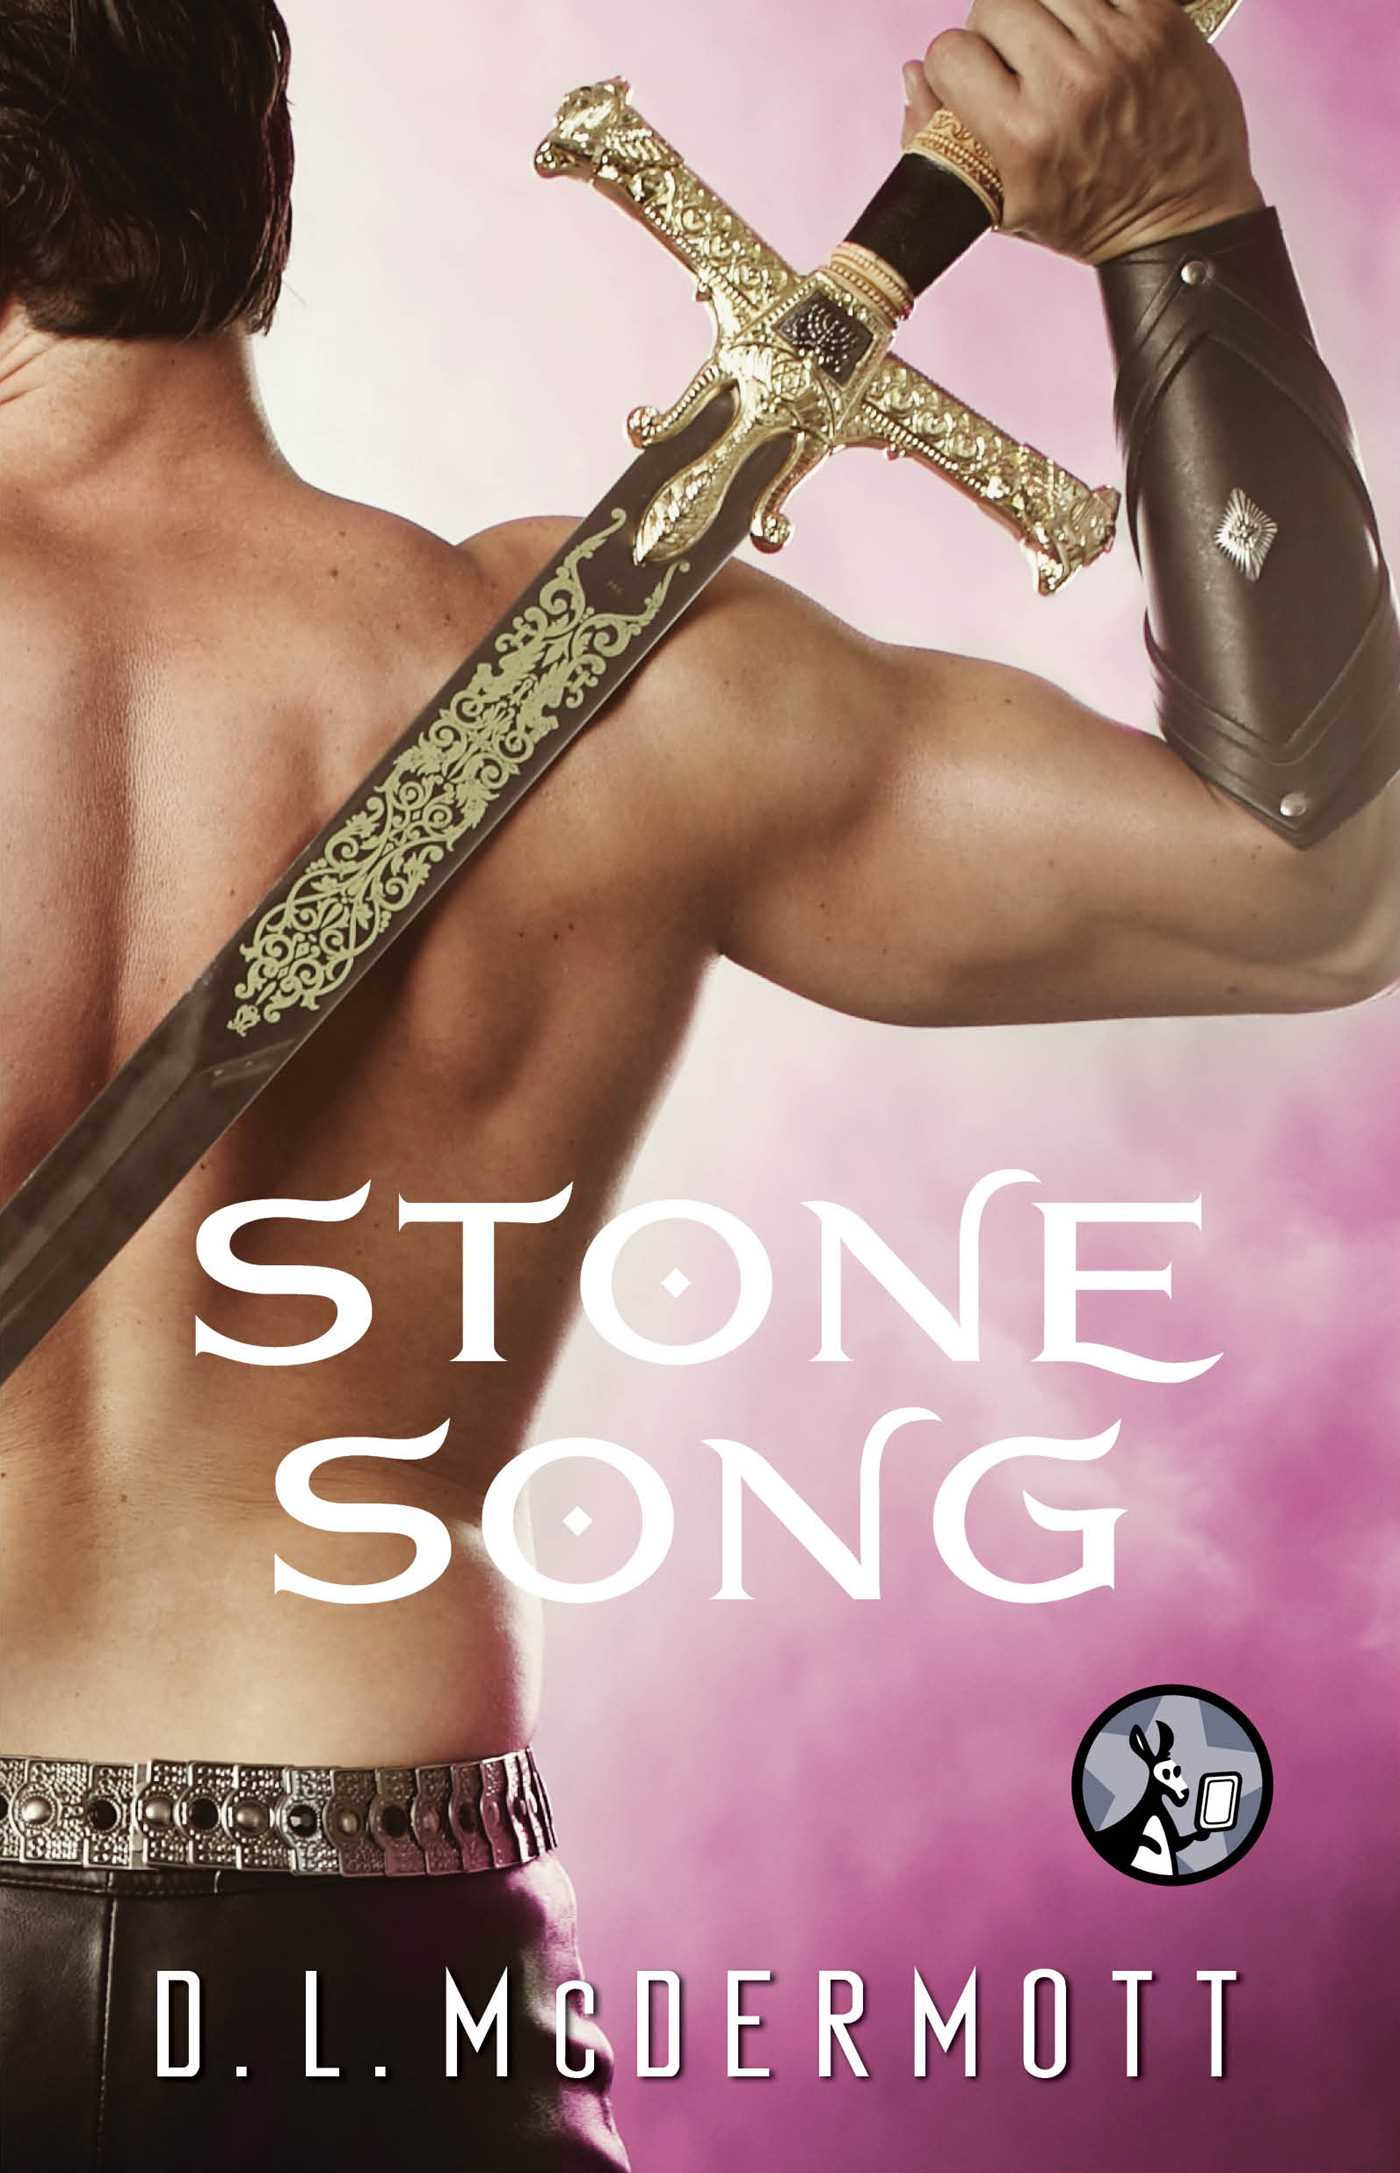 Stone song 9781476734415 hr